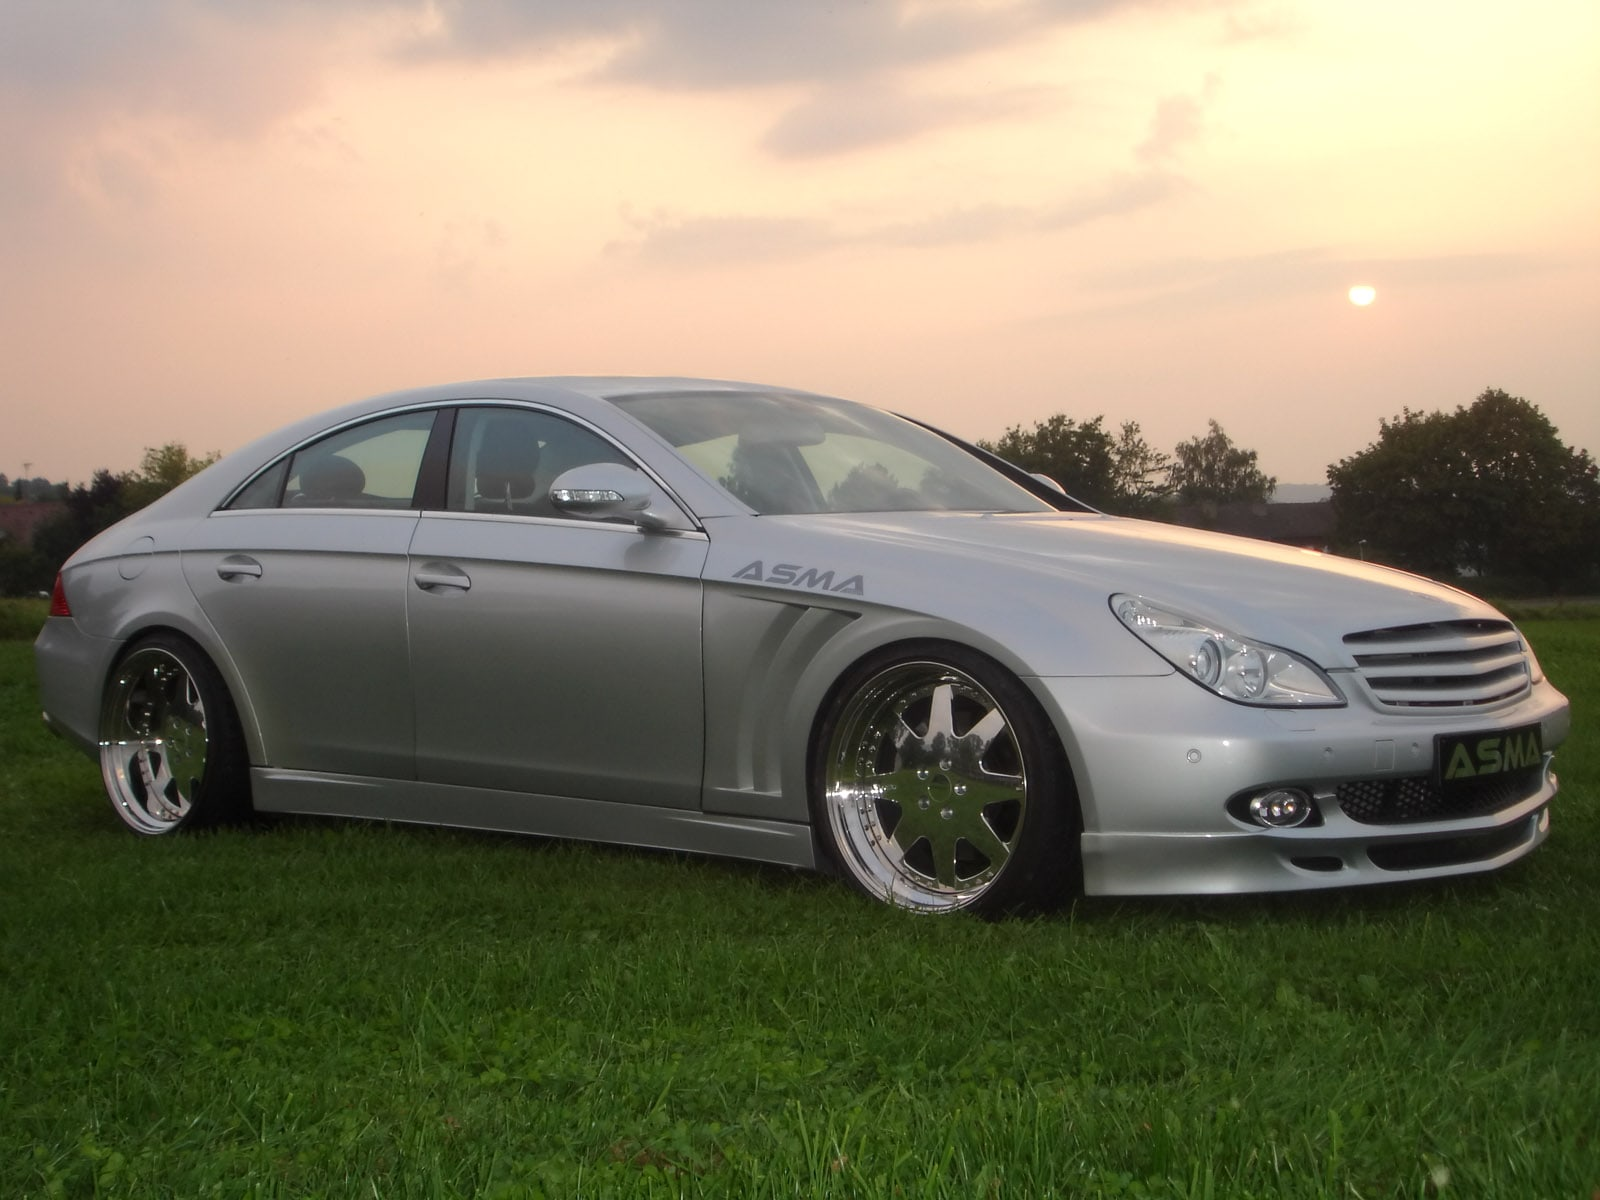 2005 Mercedes-Benz CLS Widescreen for desktop